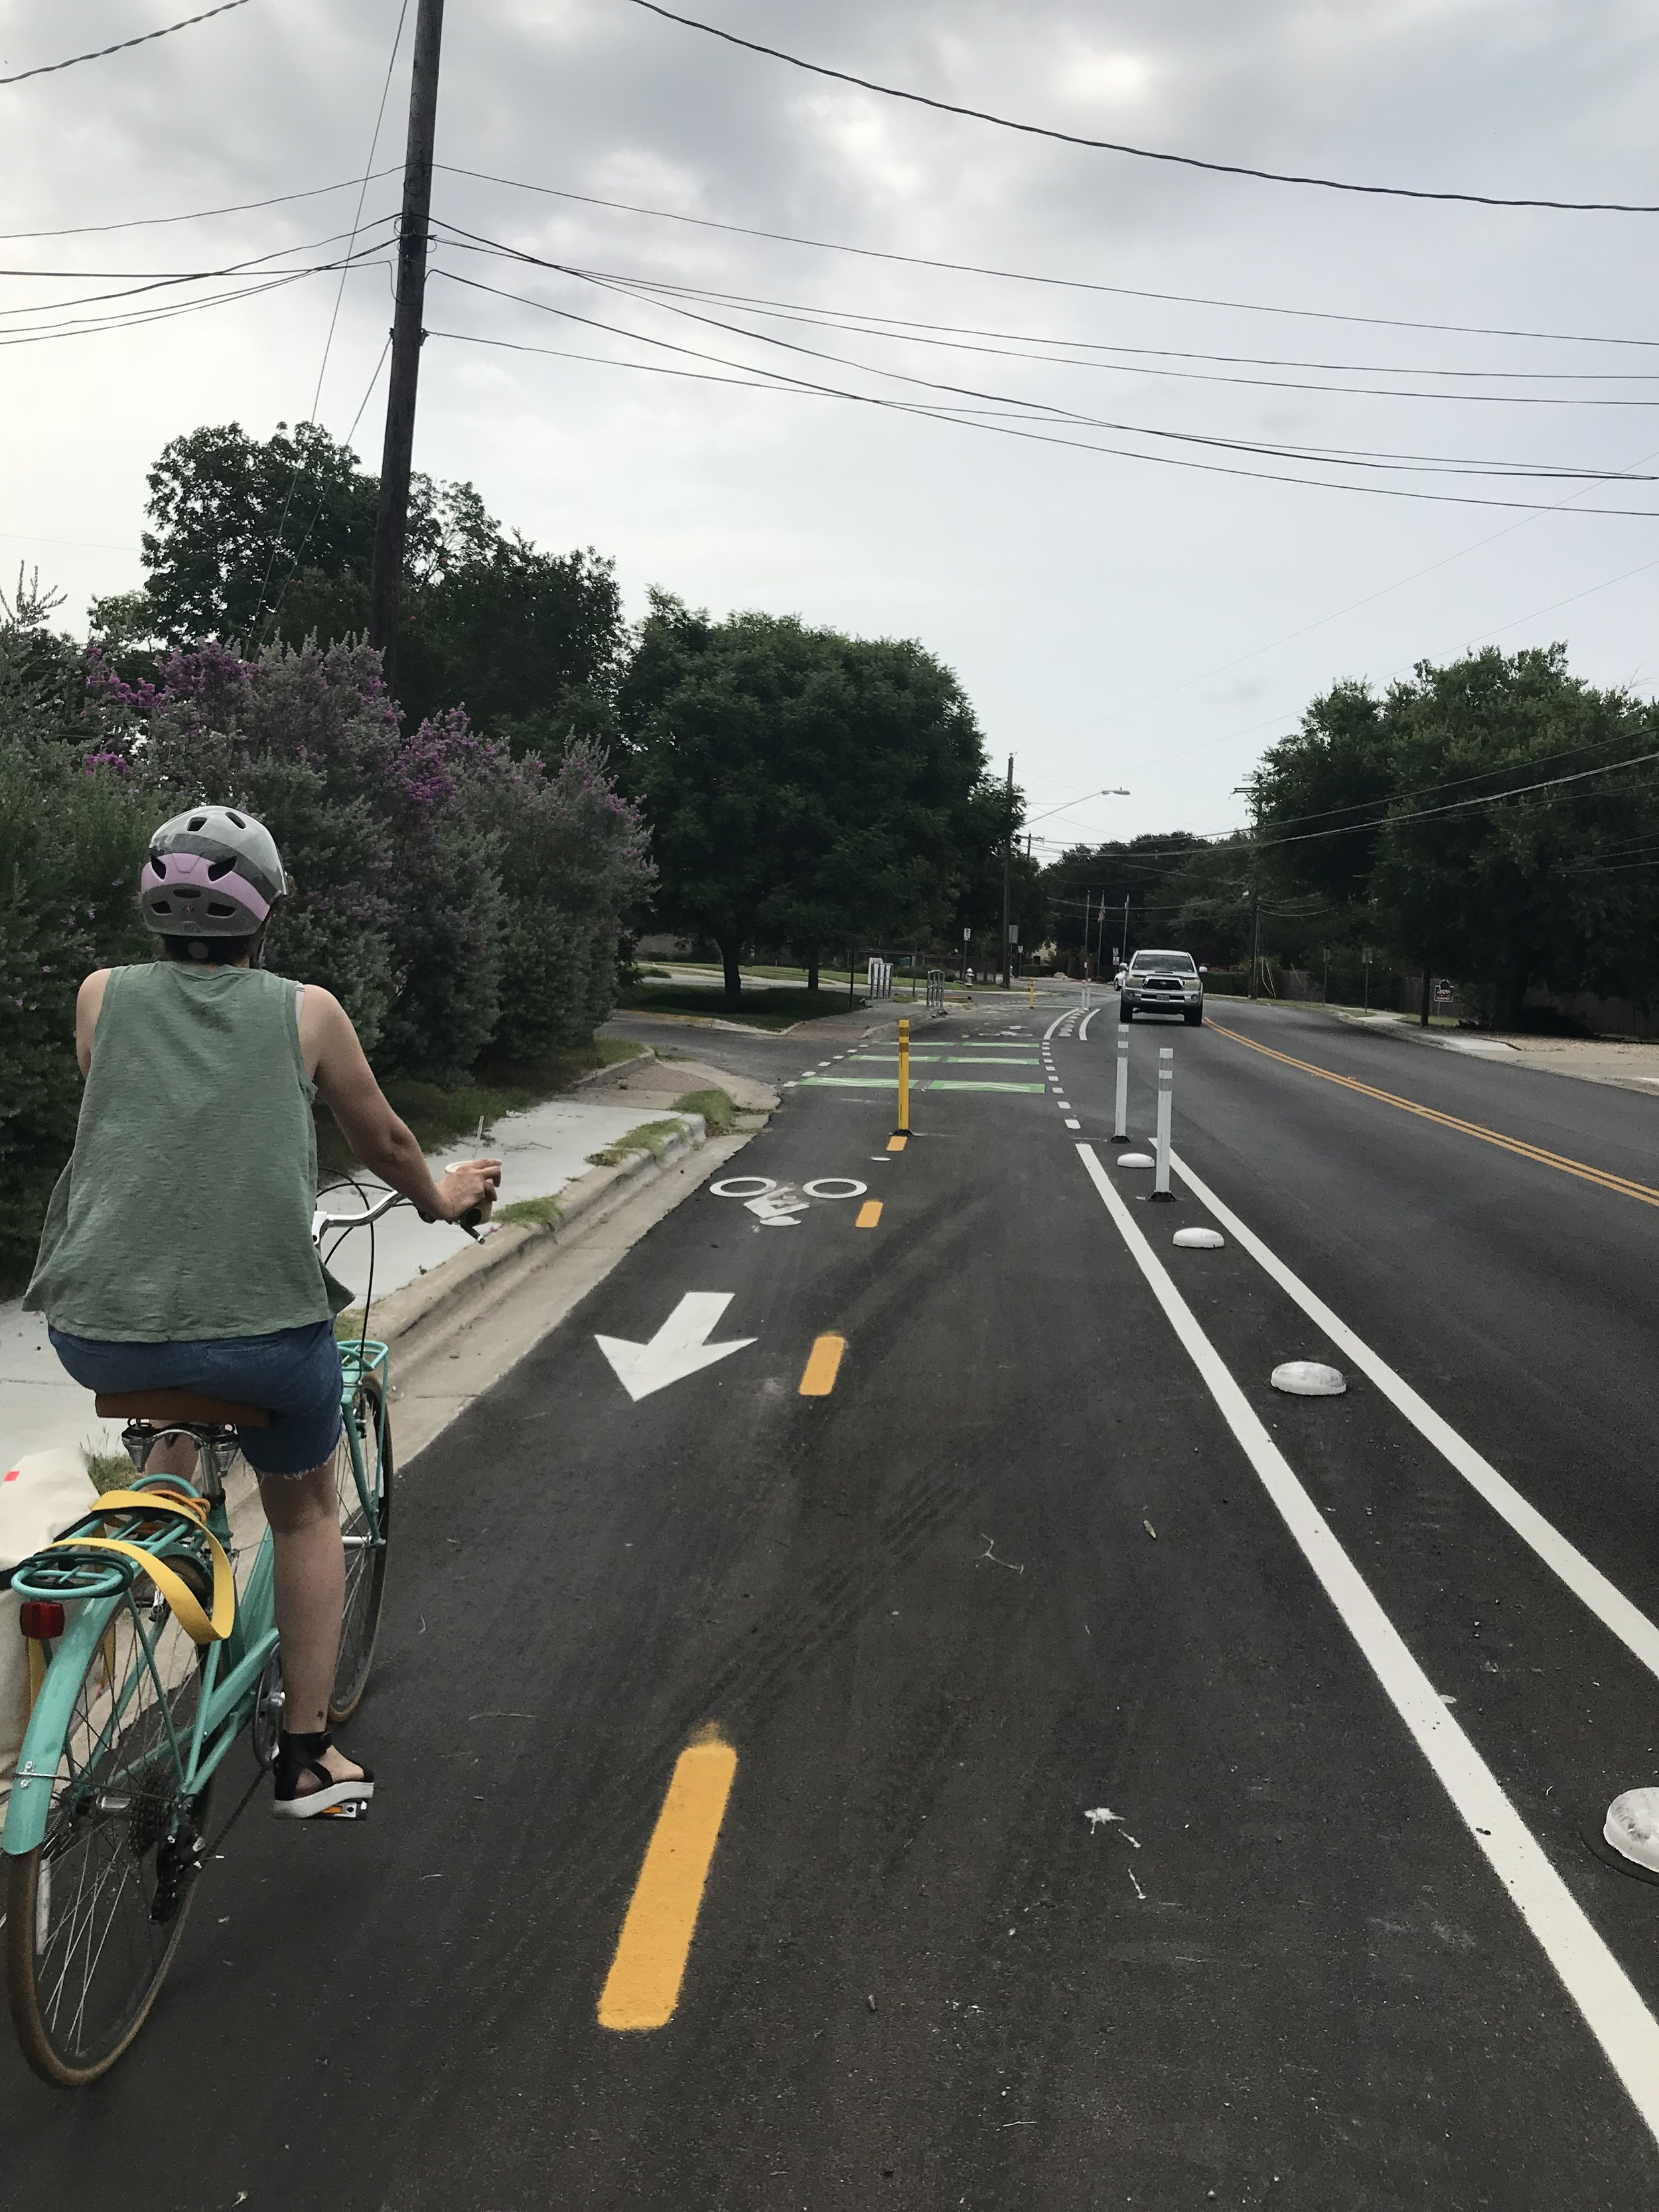 Justin Lane bike lane - Brand spankin' new and easy to navigate. Hopefully this will be a part of a more comprehensive network through the City.